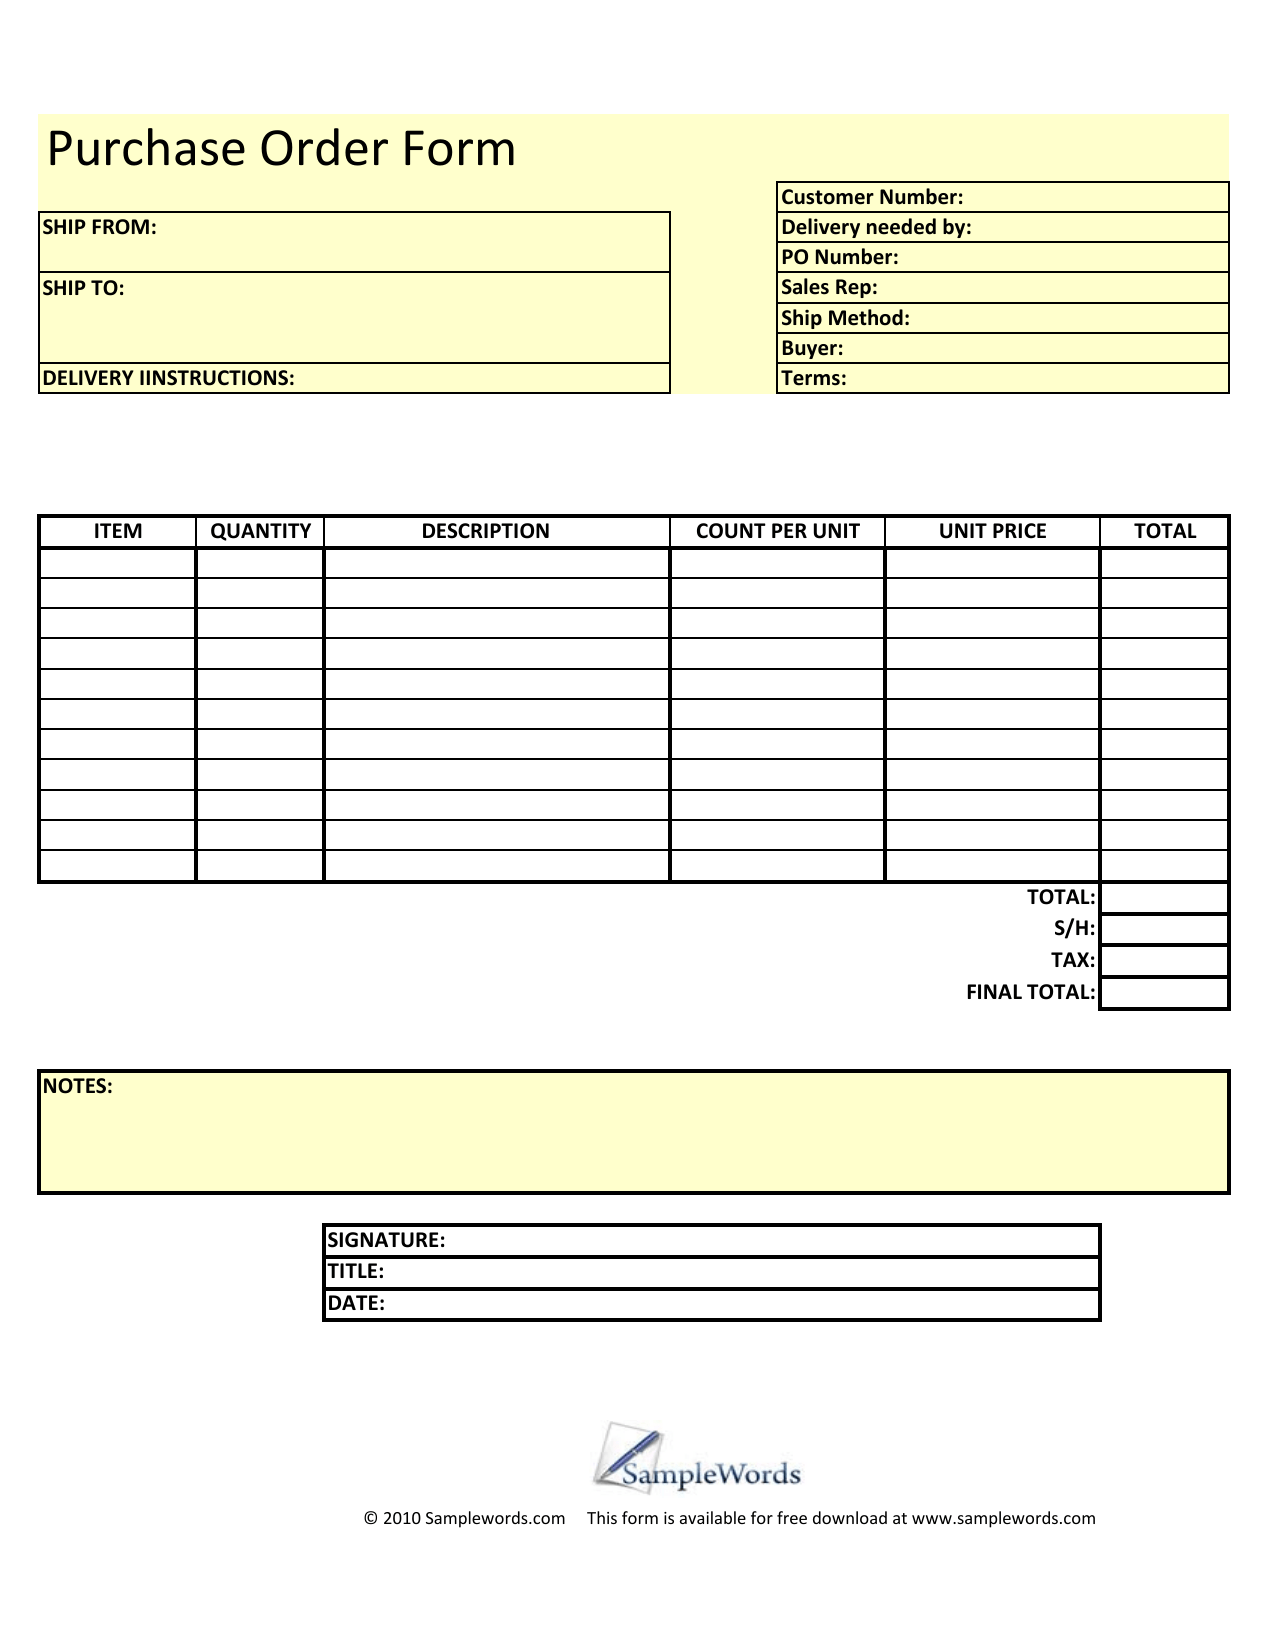 Download Blank Purchase Order Form Template